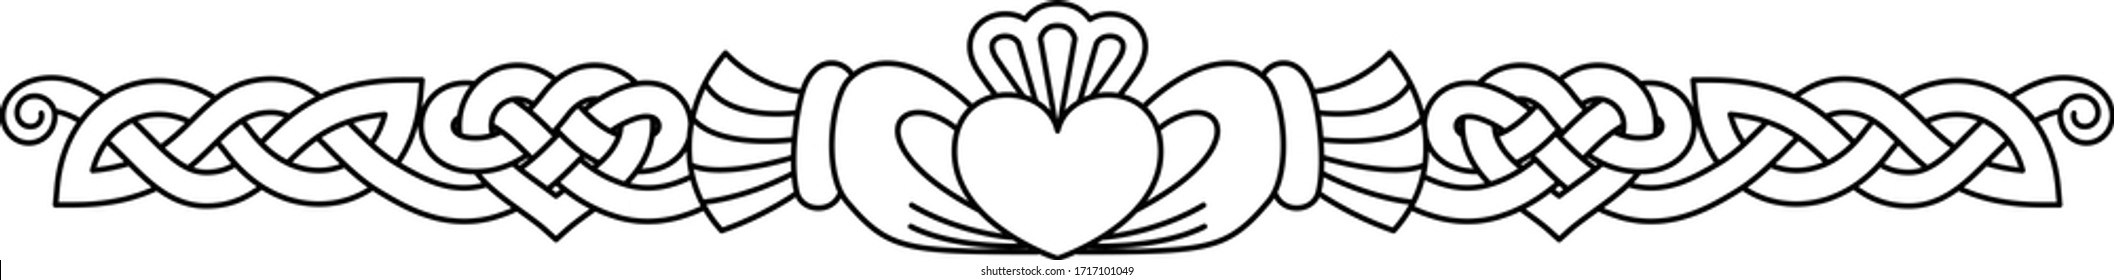 Claddagh with Knotted Heart Border